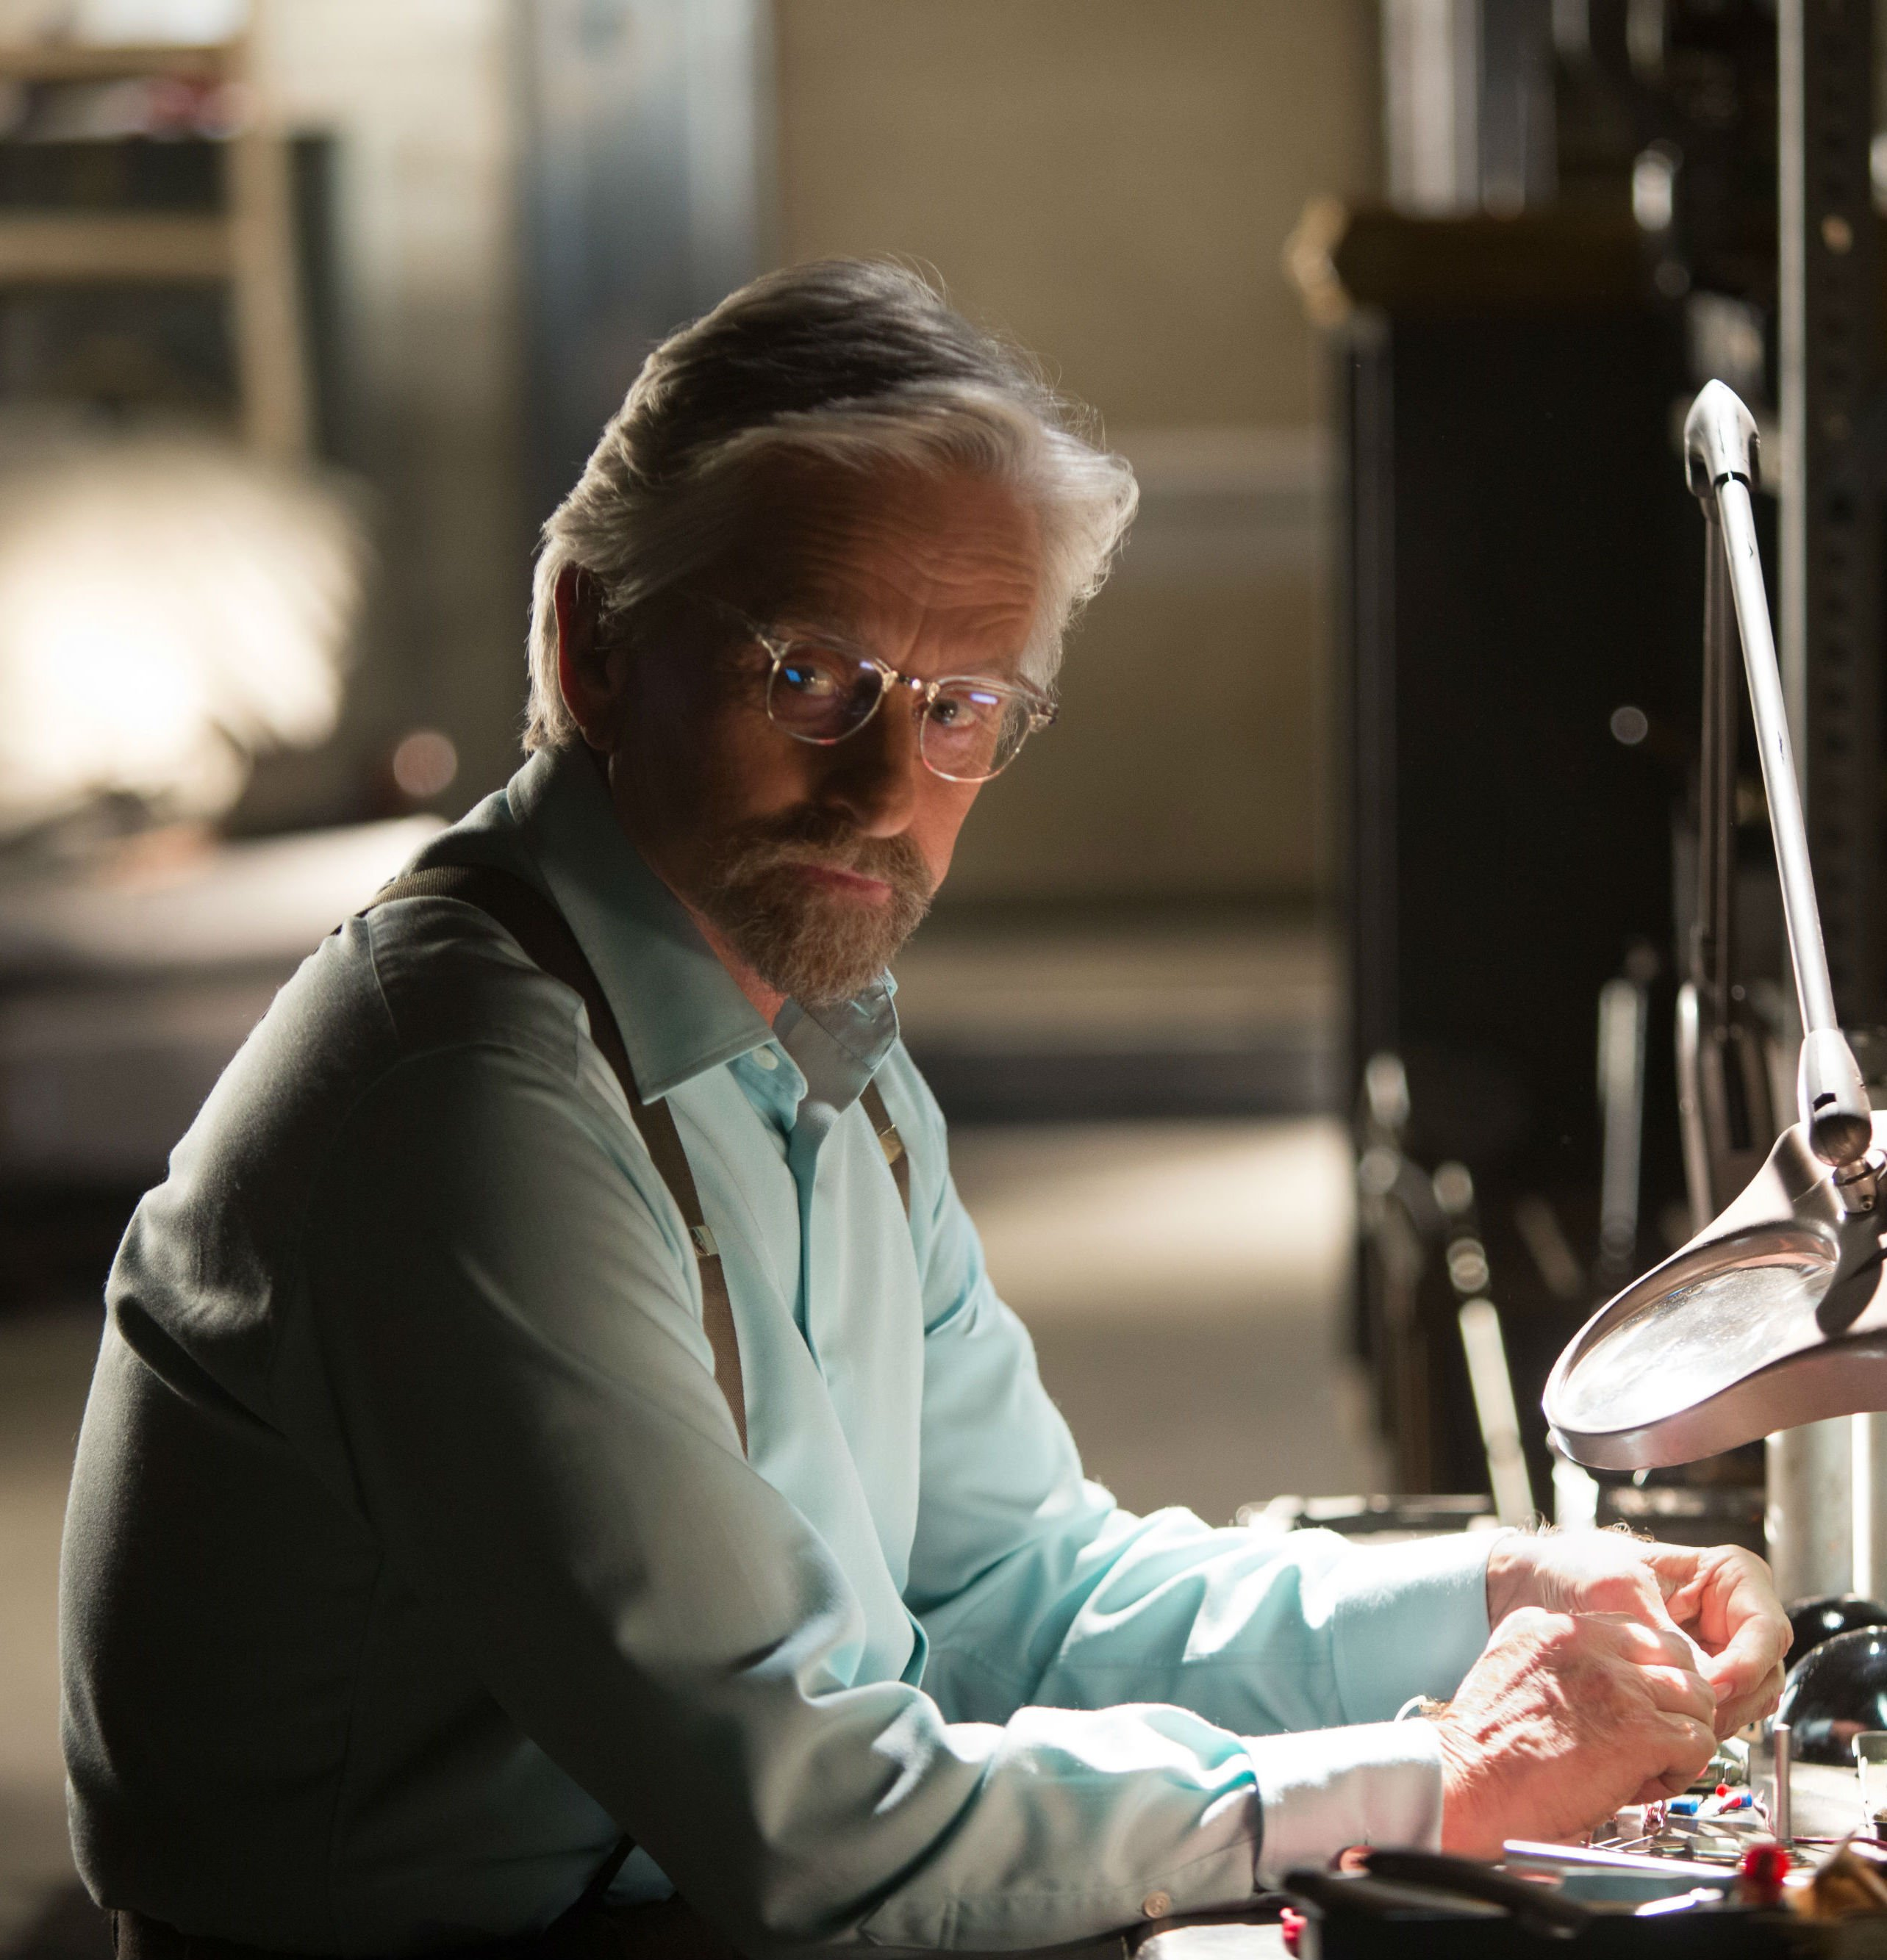 Ant Man Hank Pym Michael Douglas 30 Things You Didn't Know About Avengers: Age of Ultron